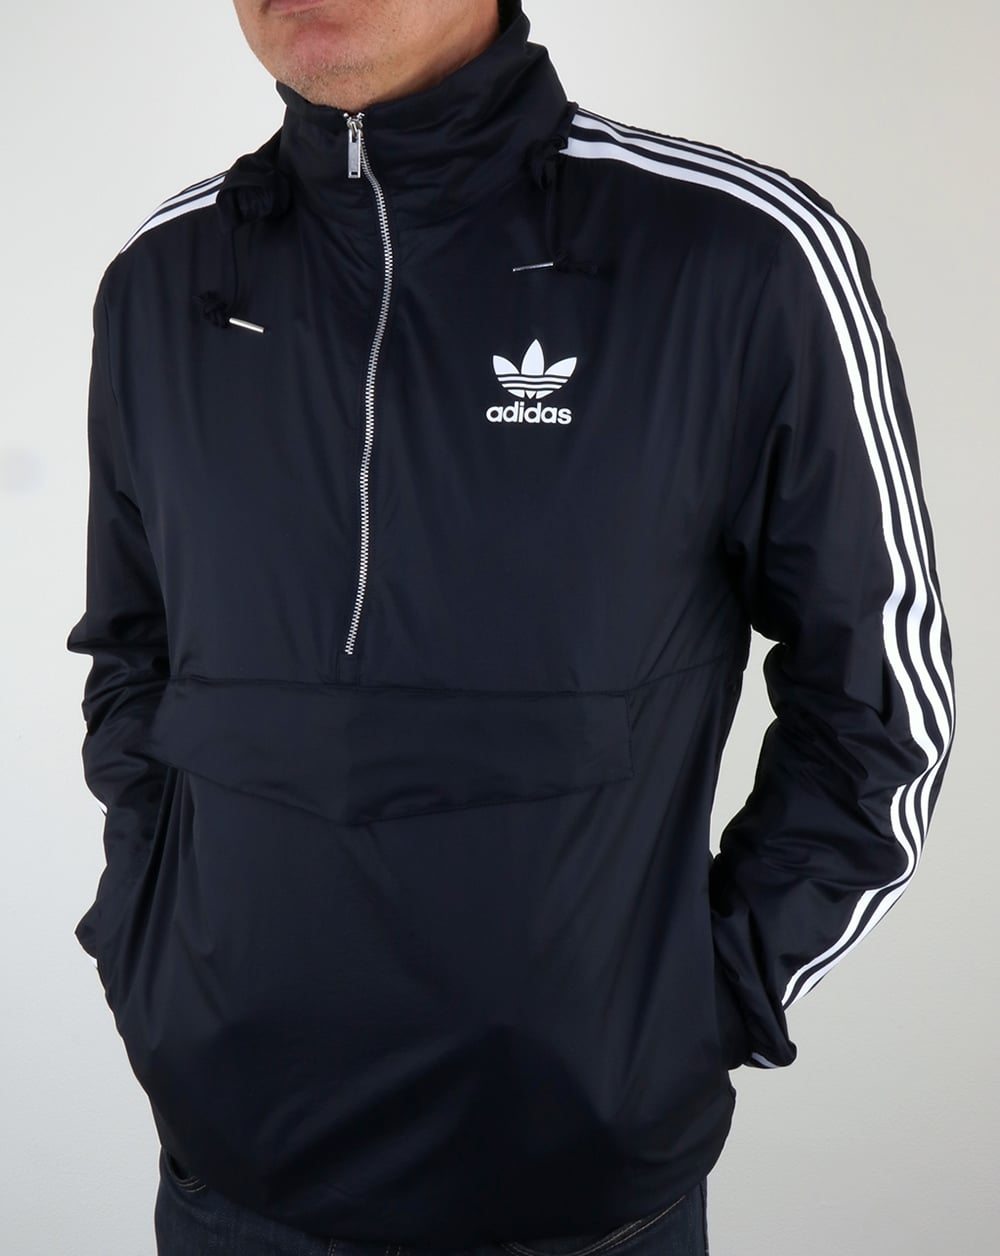 adidas originals mdn windbreaker navy jacket lightweight mens. Black Bedroom Furniture Sets. Home Design Ideas